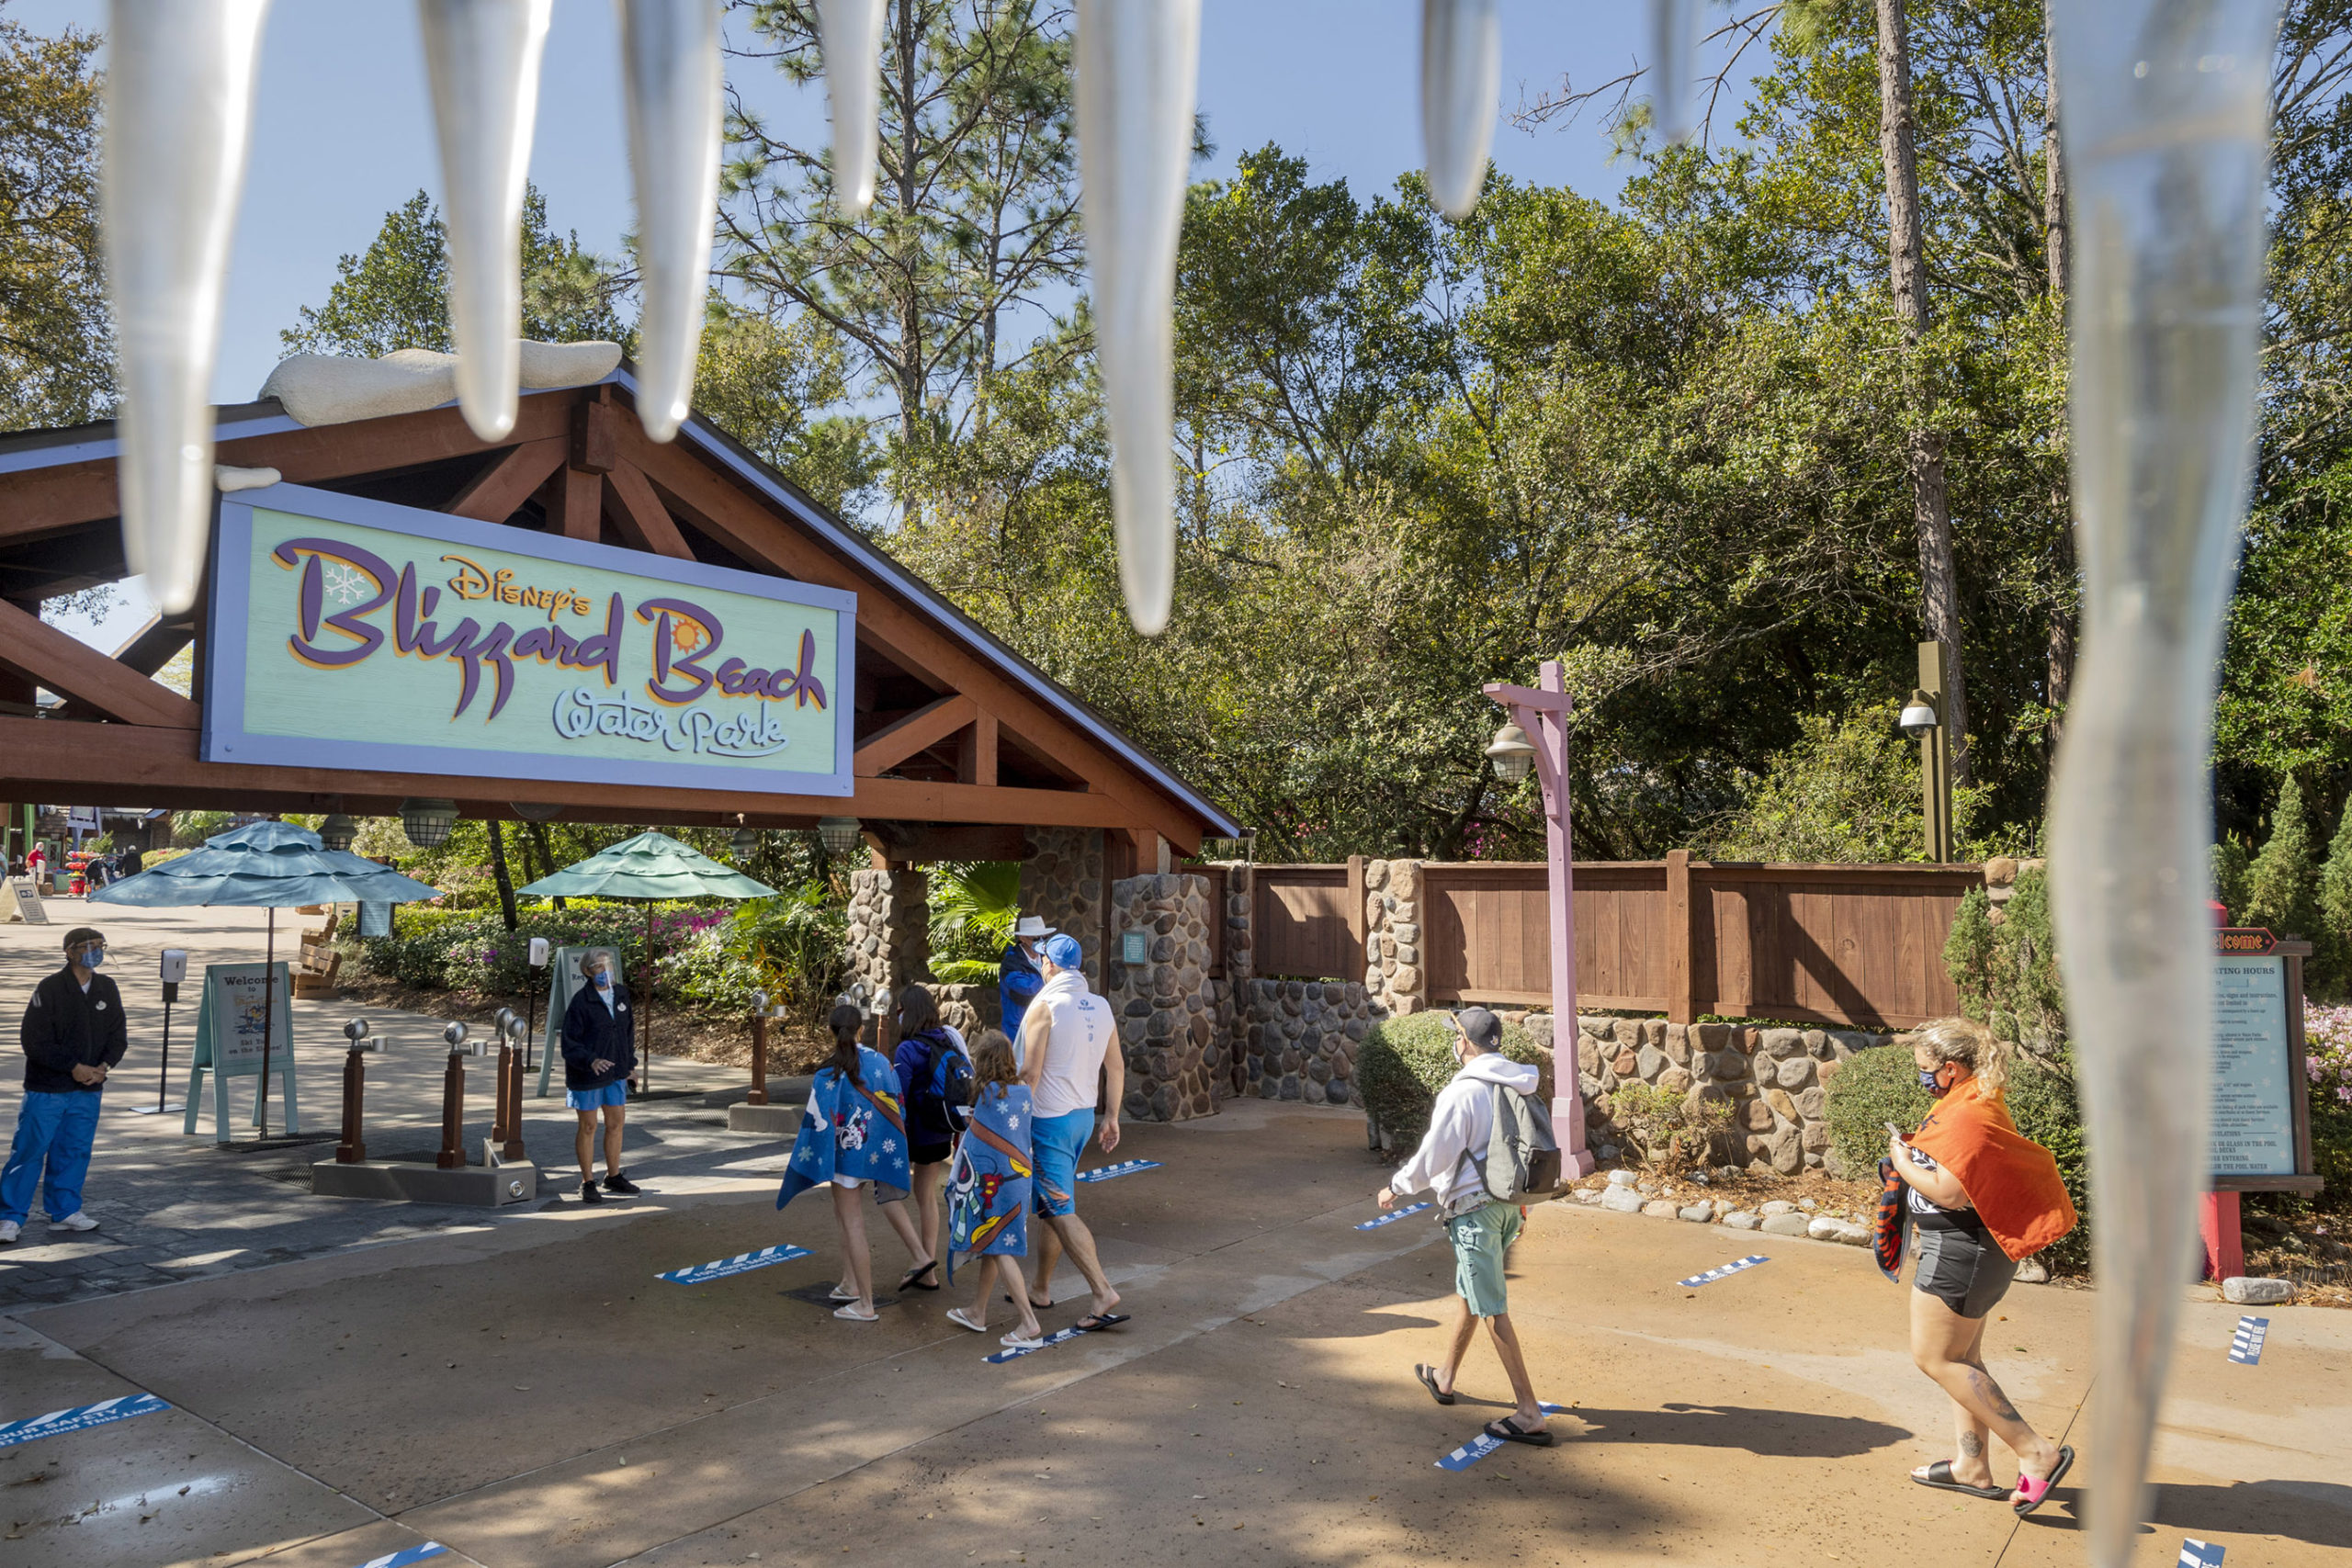 Blizzard Beach reopening from COVID shutdown